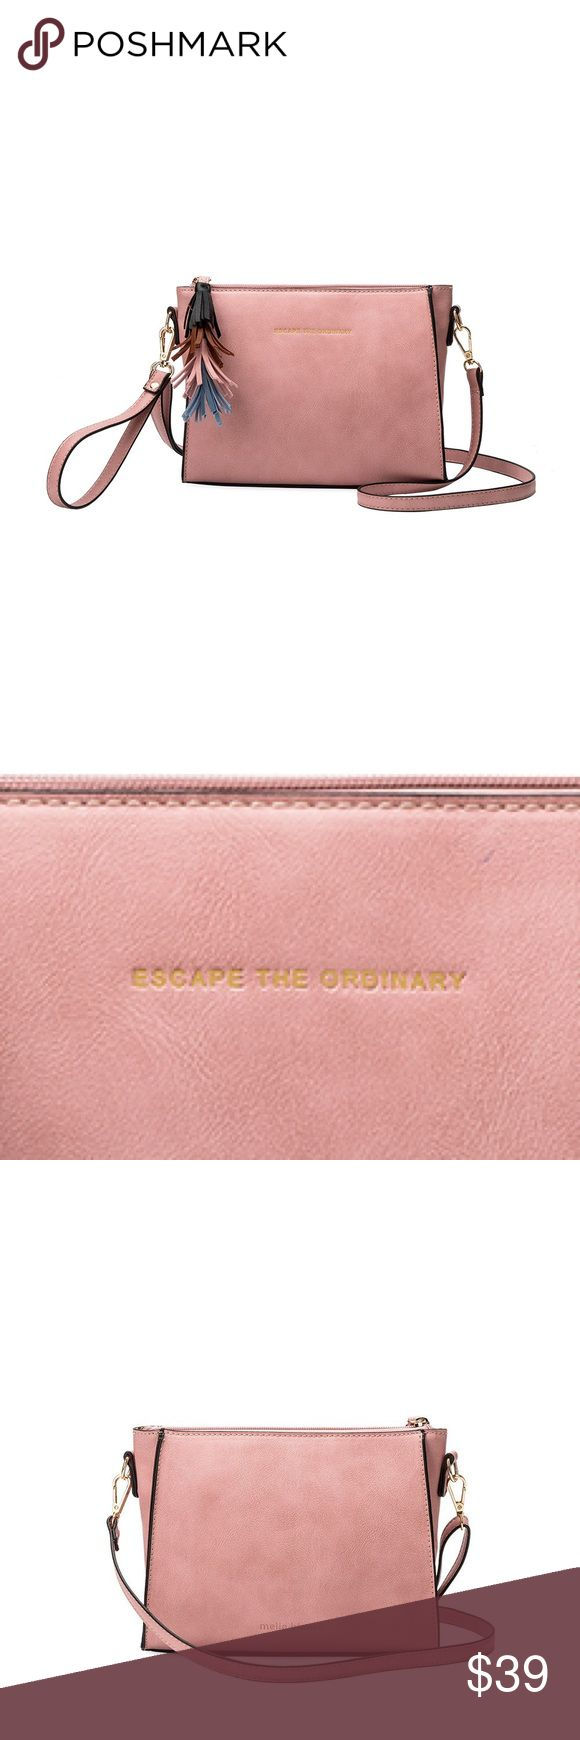 """Melie Bianco Byron Quote Crossbody Melie Bianco Byron Quote Crossbody.                          Premium Vegan Leather Middle Zipper Interior Zipper Pocket Additional Wristlet Strap Included Gold Embossing """"ESCAPE THE ORDINARY"""" Dimensions: 9'L x 3'W x 6H' Color: Pink Melie Bianco Bags Crossbody Bags"""